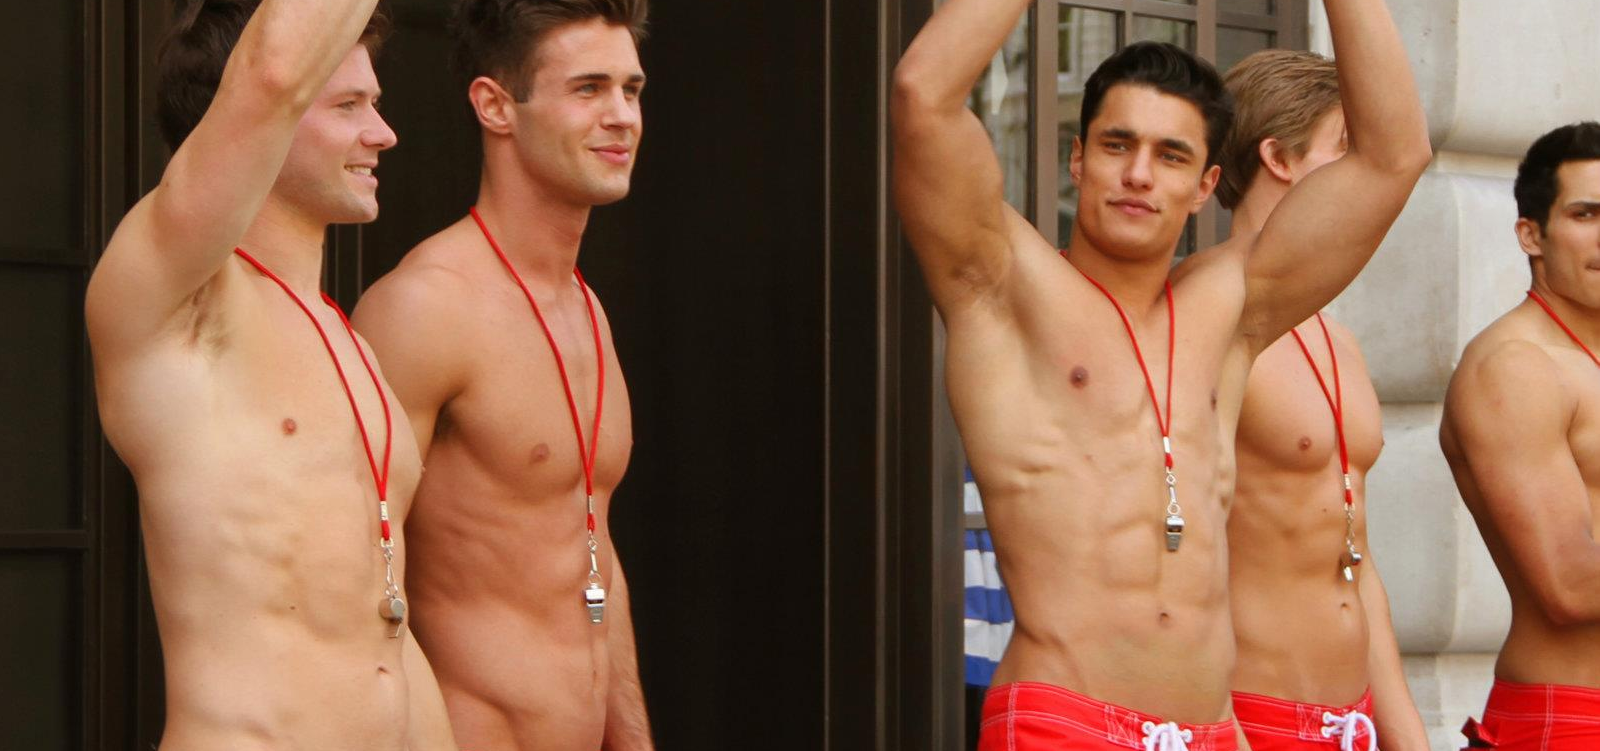 celebrate-hot-guys-blog-tumblr-milestone